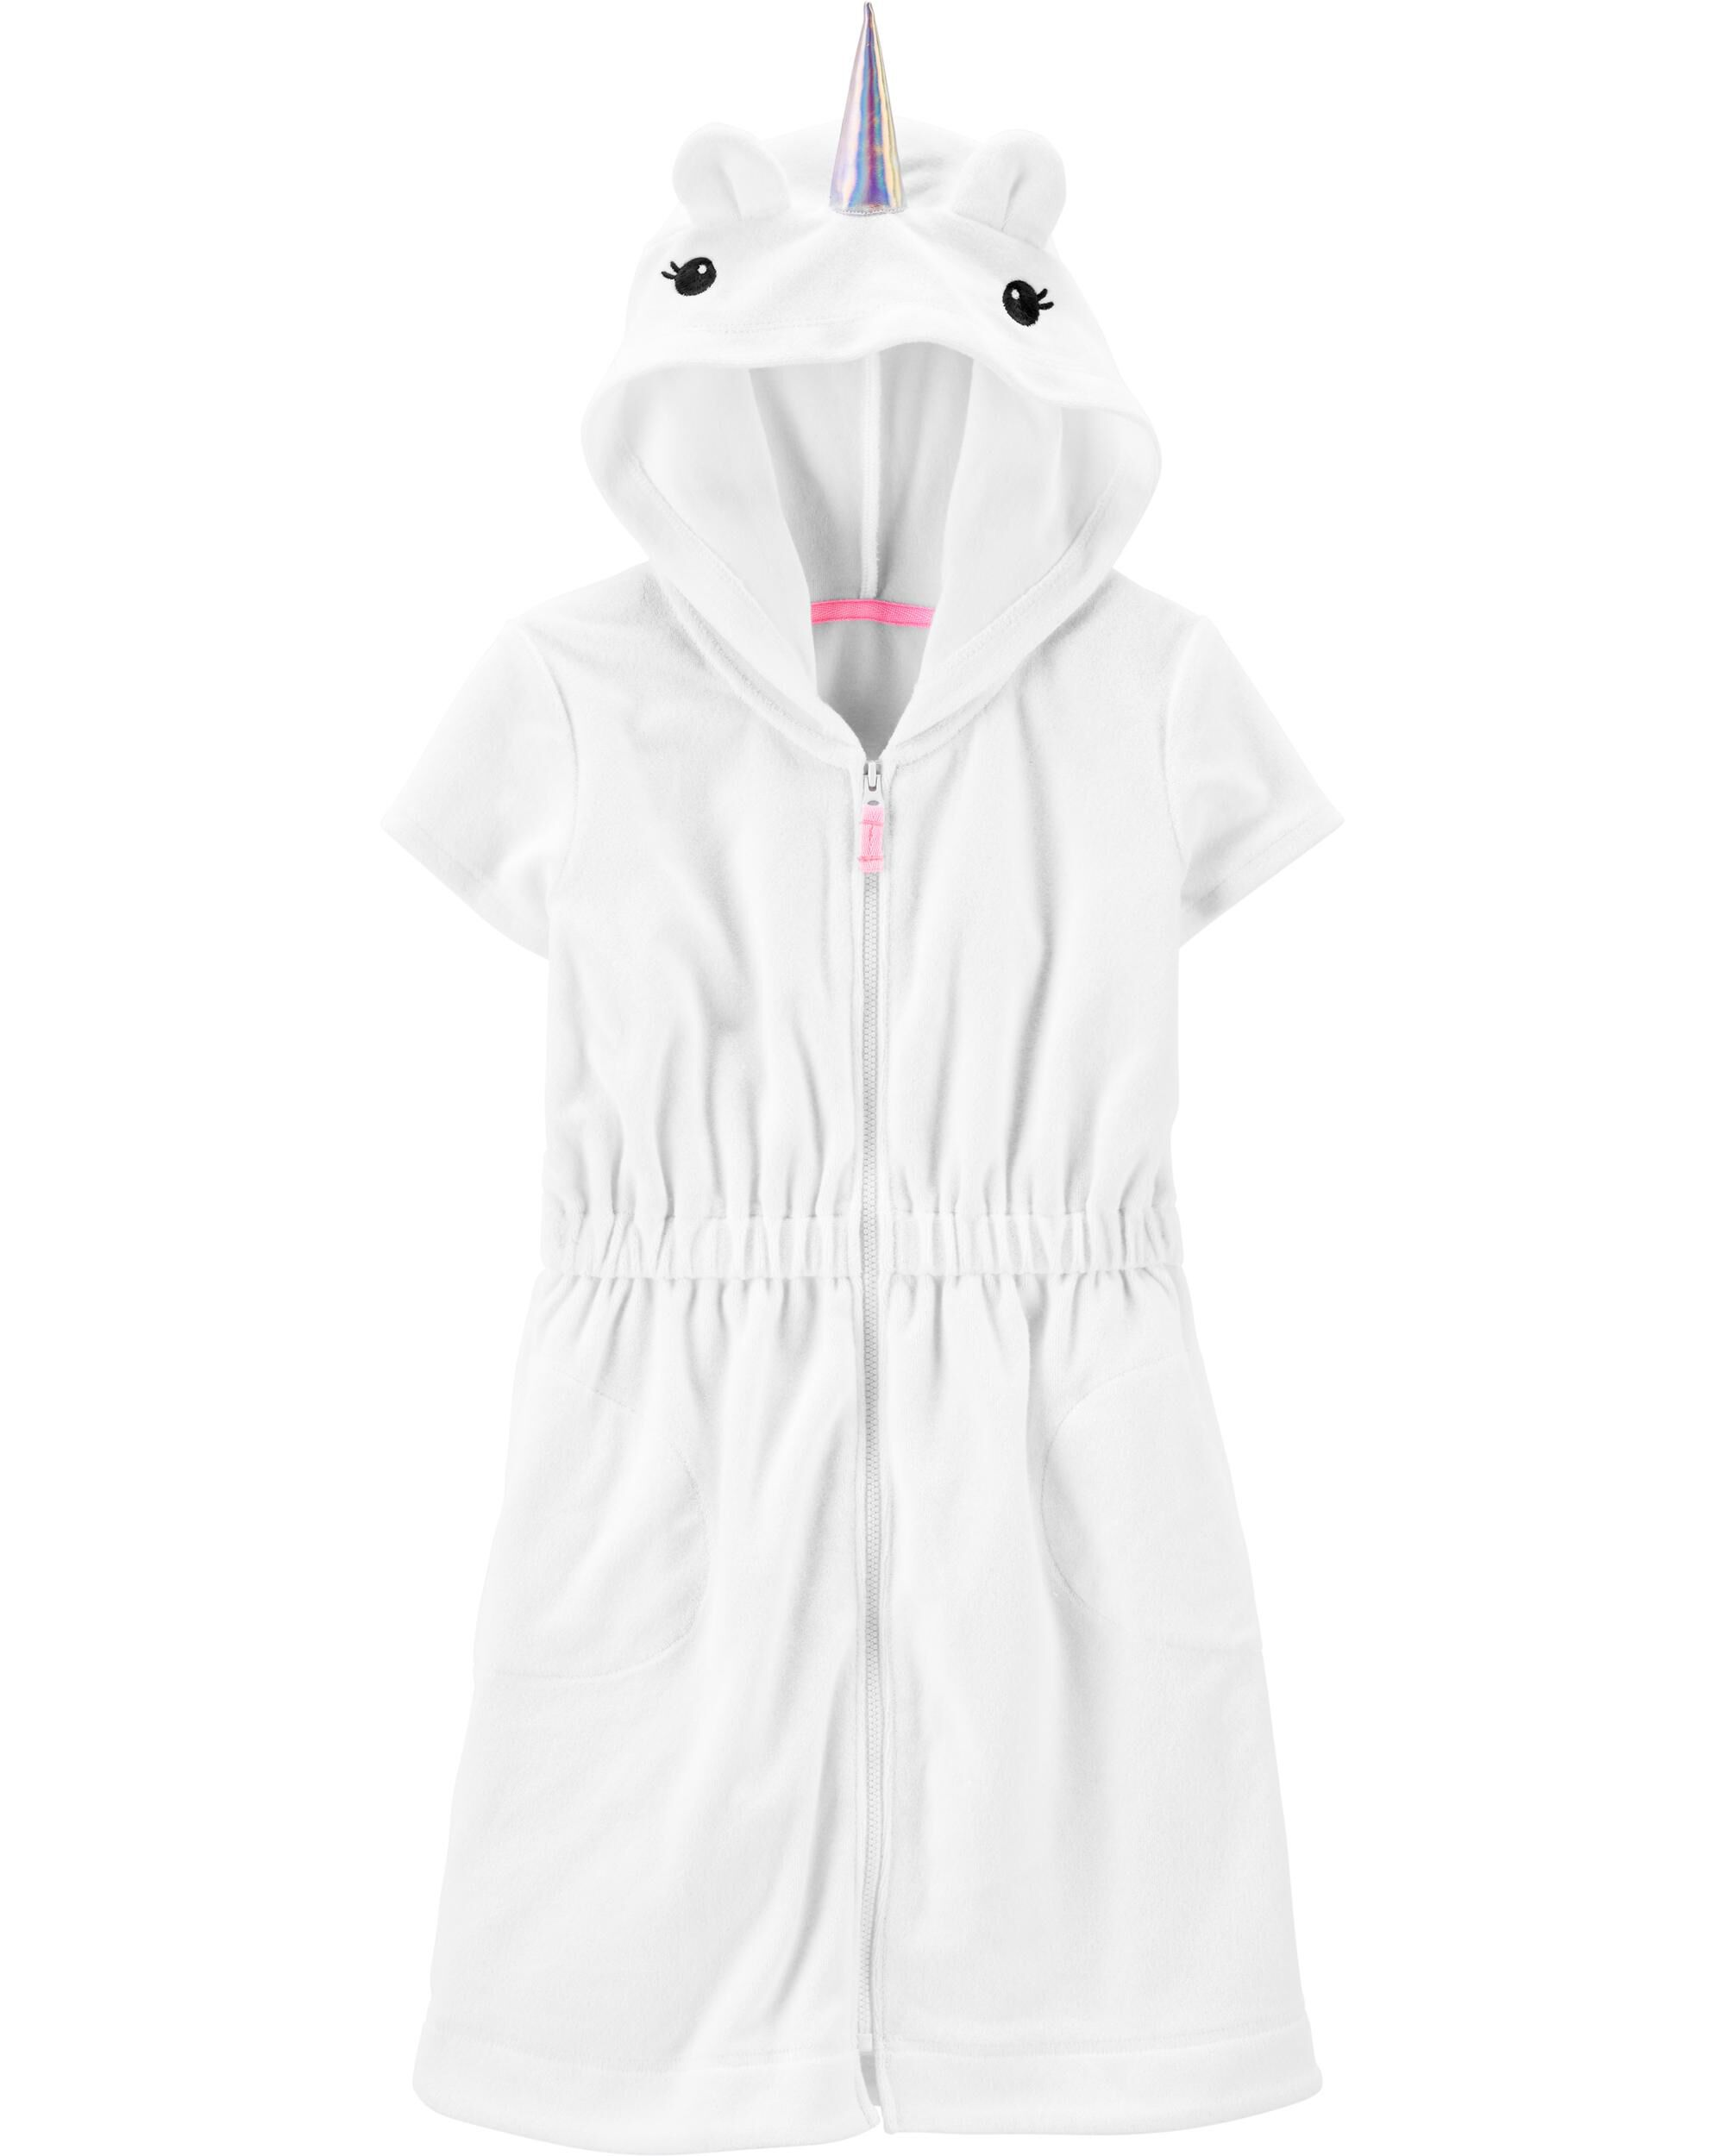 *DOORBUSTER* Unicorn Hooded Cover-Up